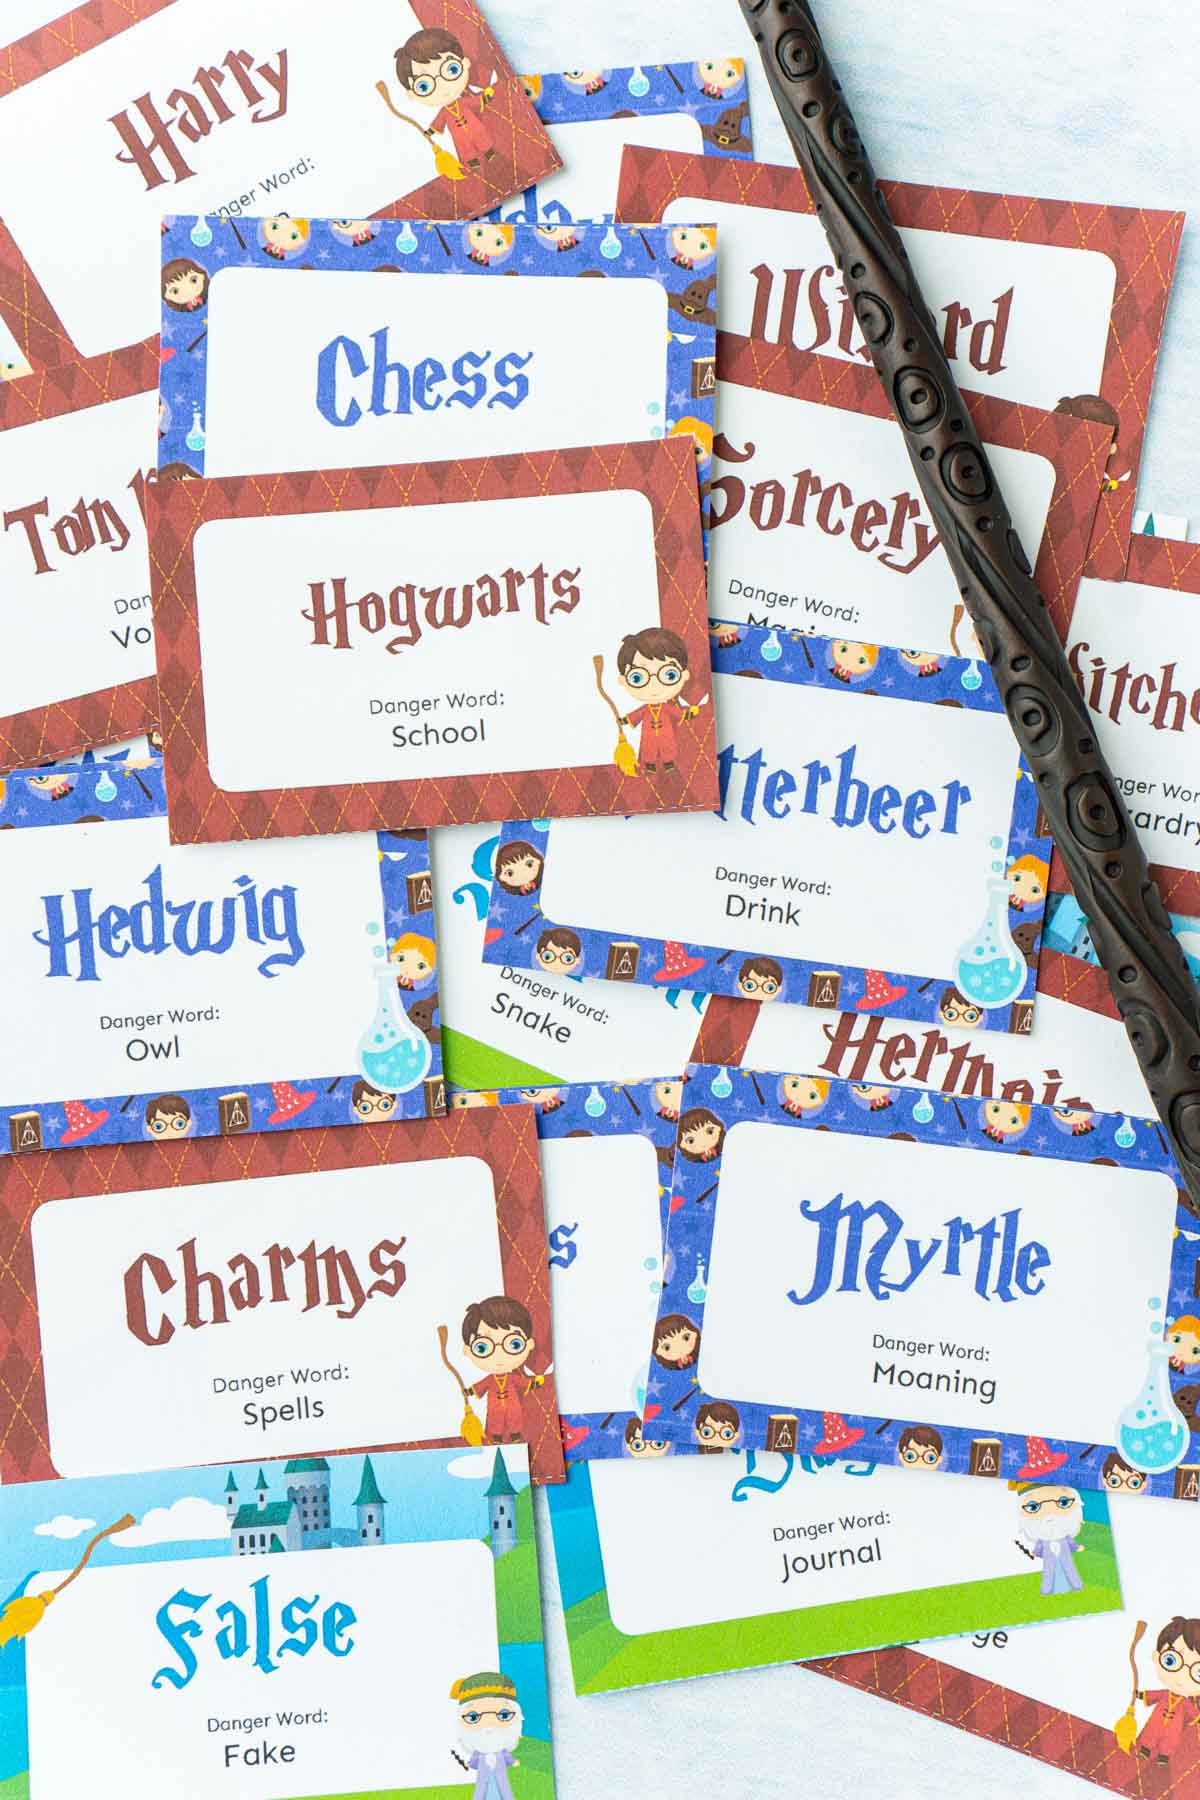 A bunch of little cards with Harry Potter words and pictures on them and a wand